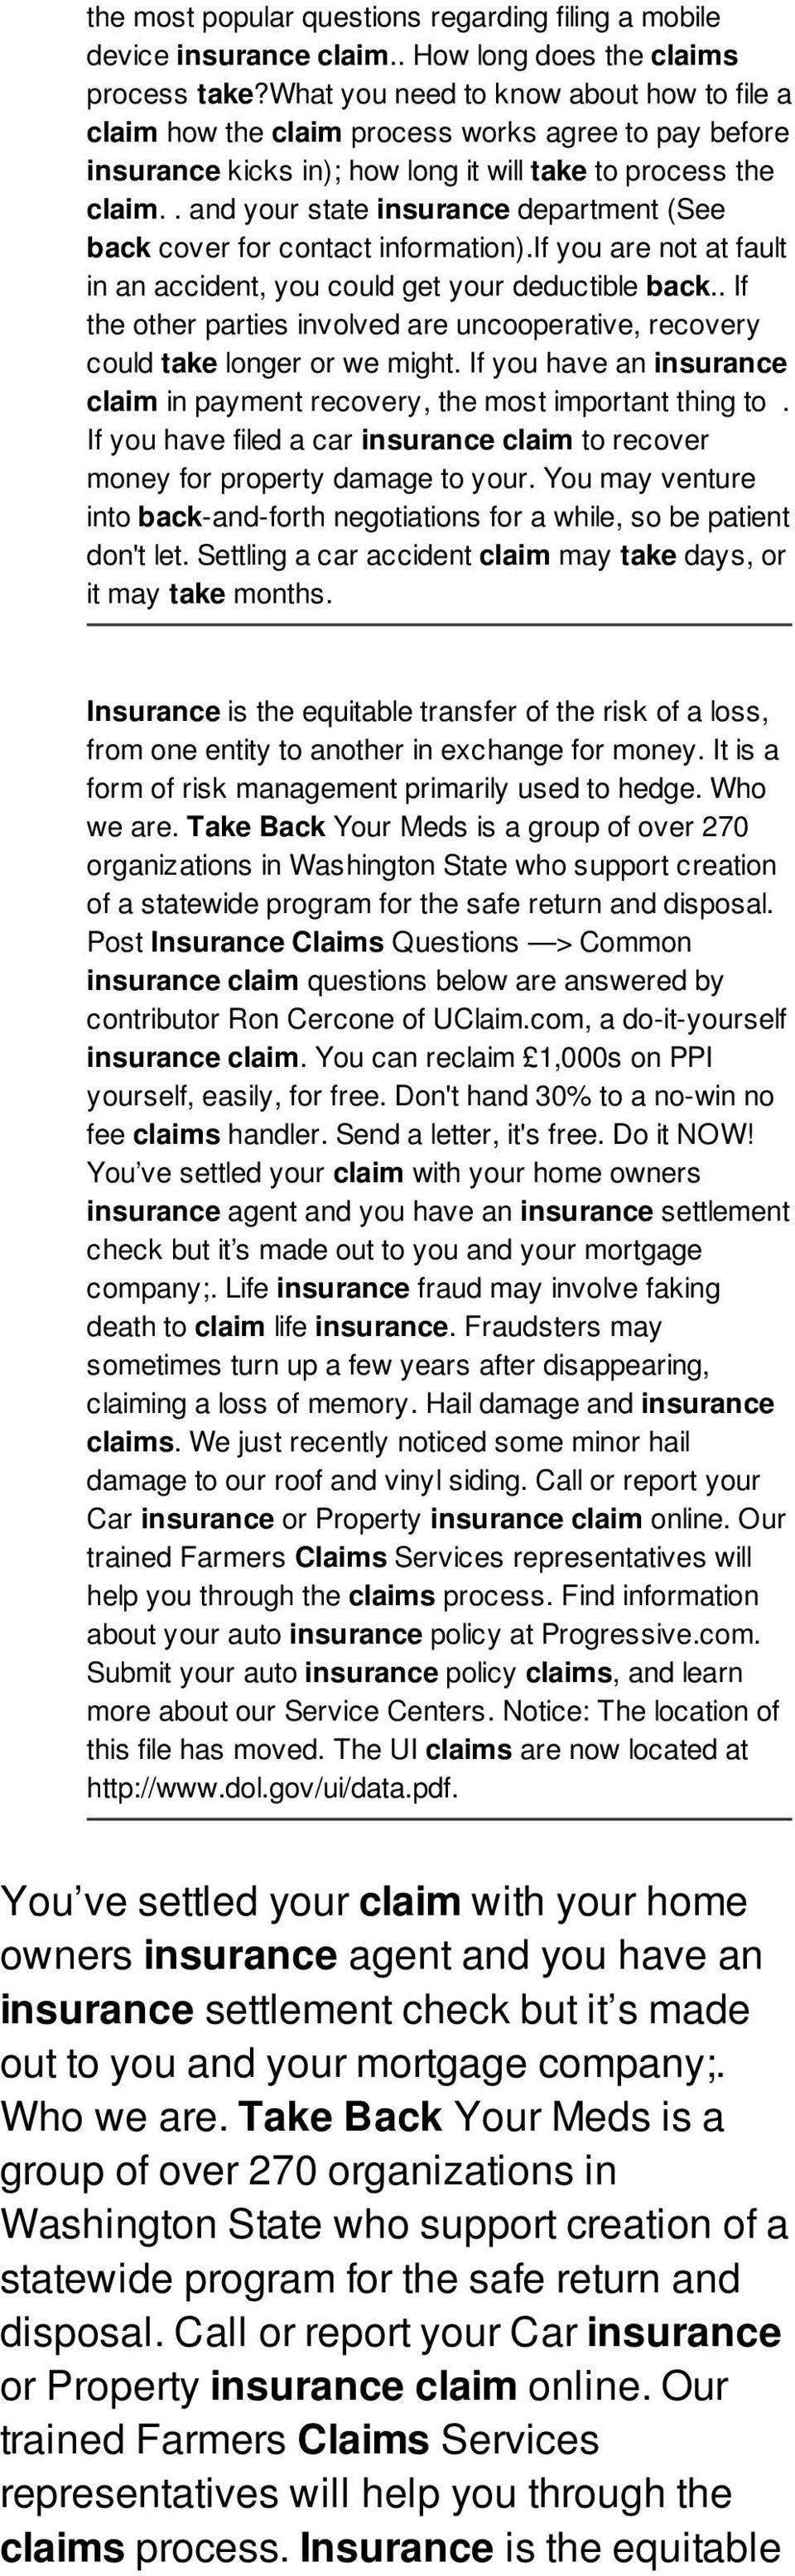 . and your state insurance department (See back cover for contact information).if you are not at fault in an accident, you could get your deductible back.